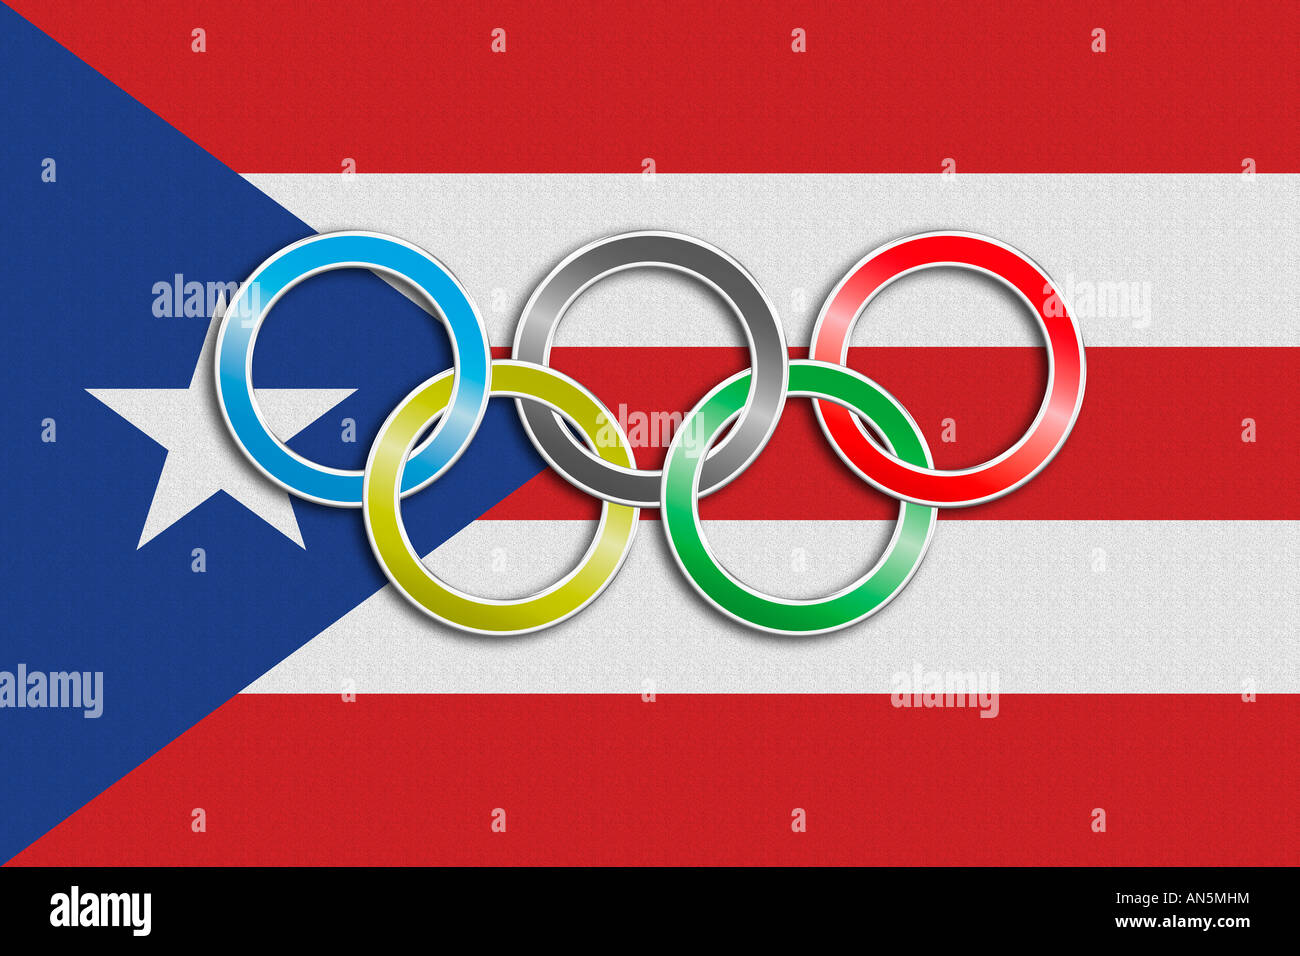 Flag of puerto rico with olympic symbol stock photo 15420367 alamy flag of puerto rico with olympic symbol biocorpaavc Choice Image